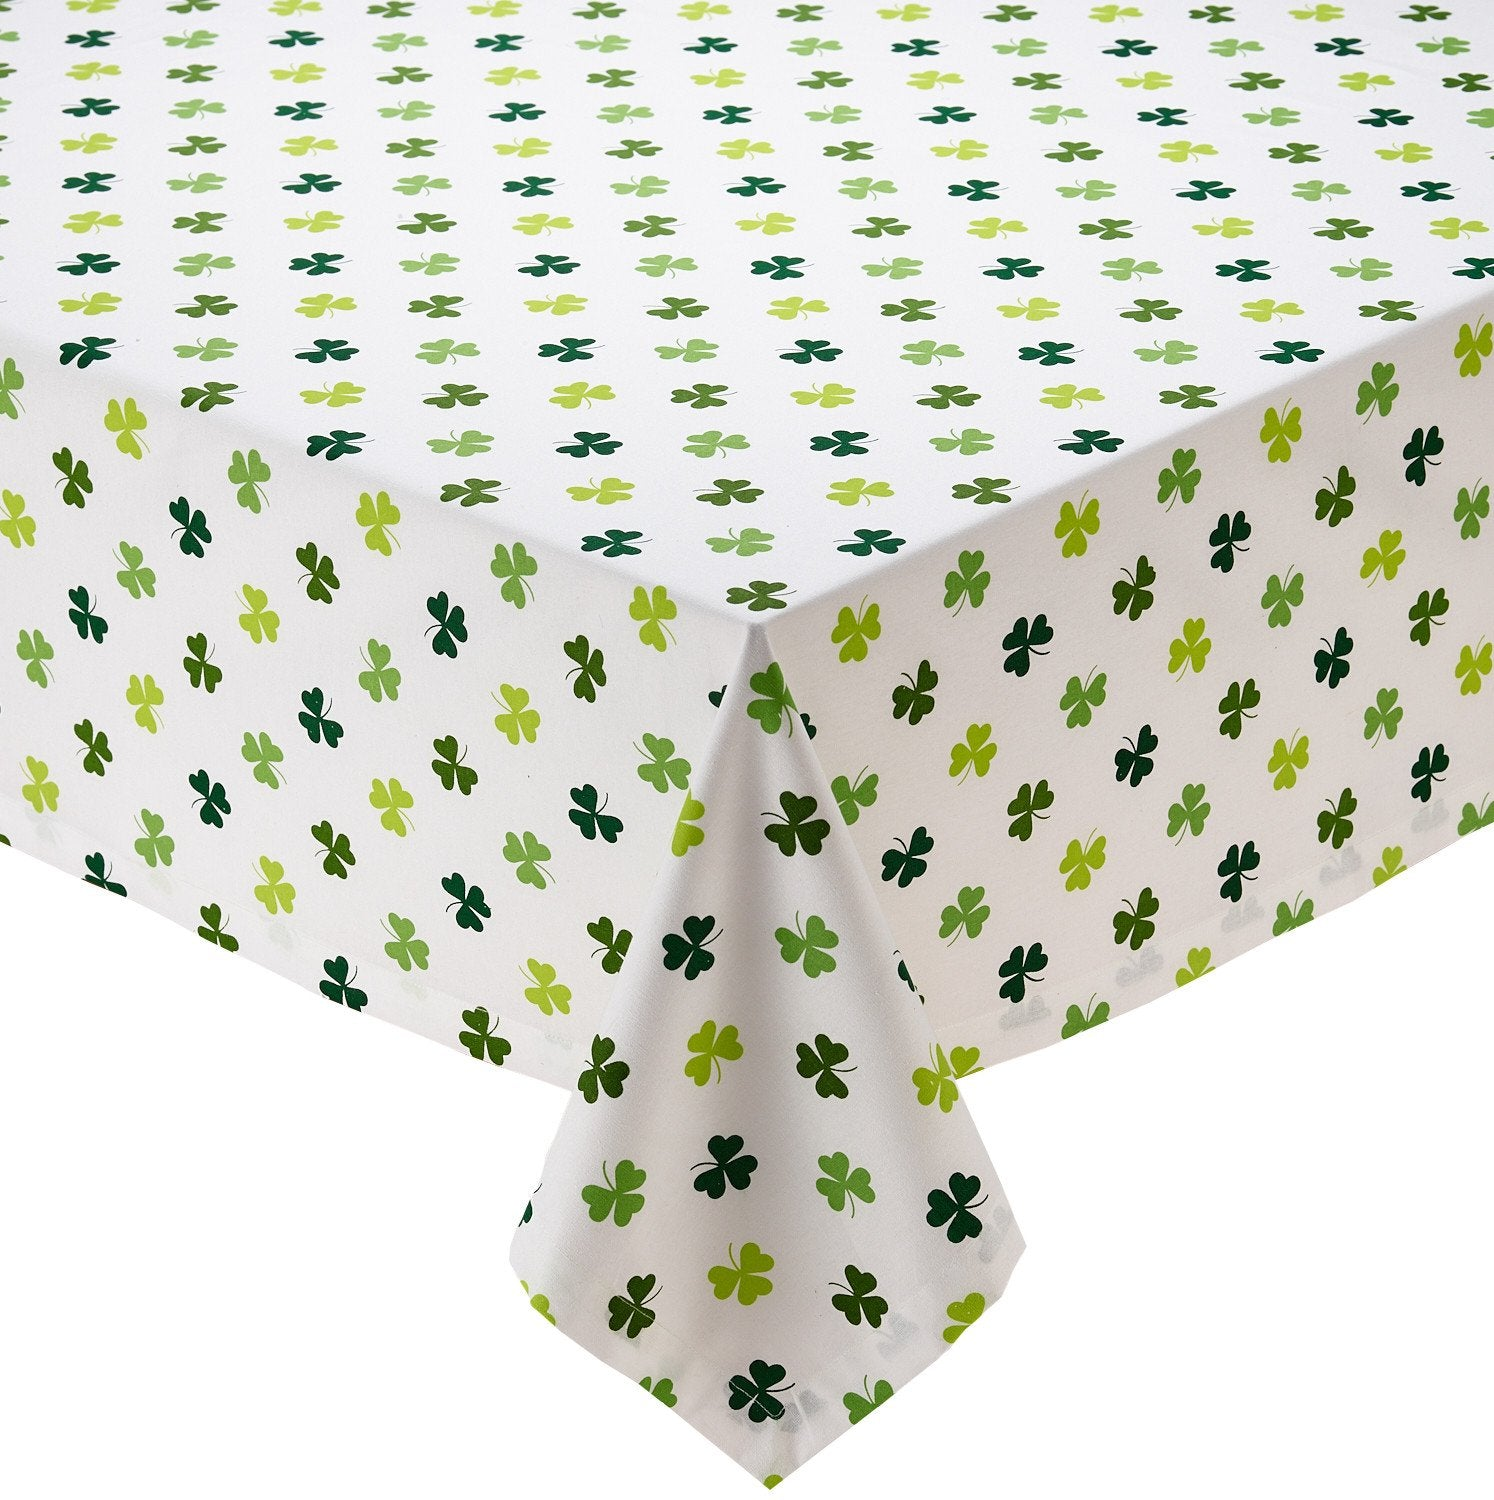 Wholesale Shamrock Shake Printed Tablecloth   DII Design Imports ...